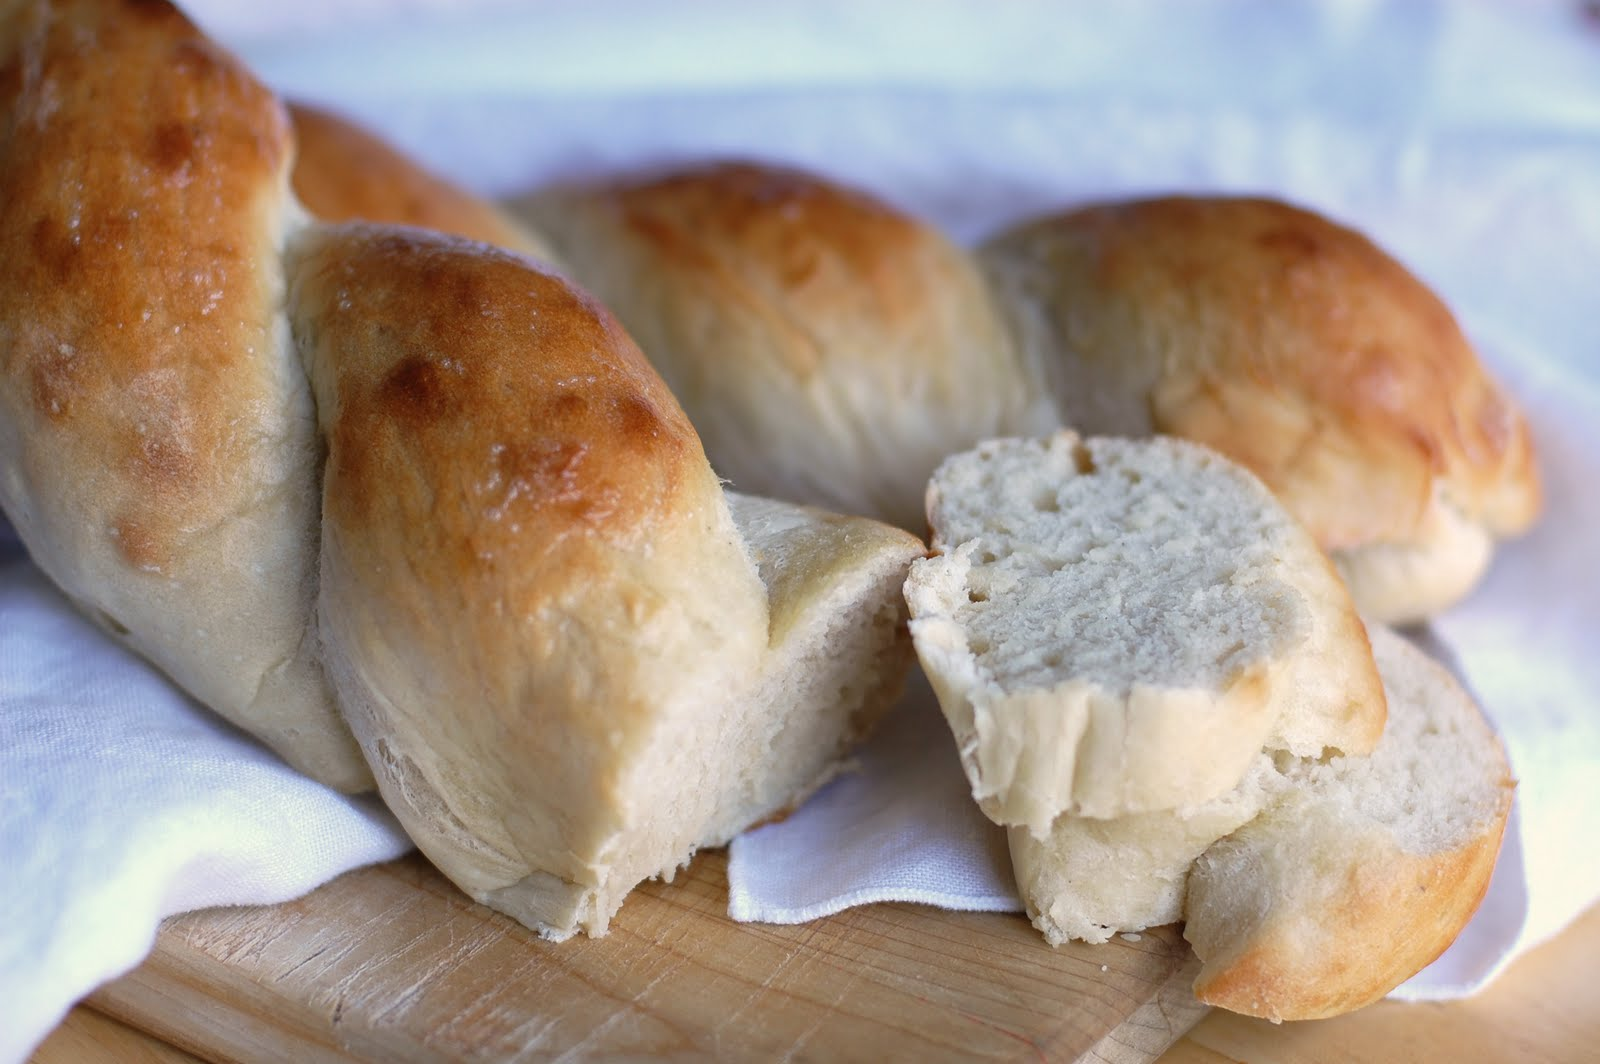 Barefoot and Baking: Quick French Baguettes